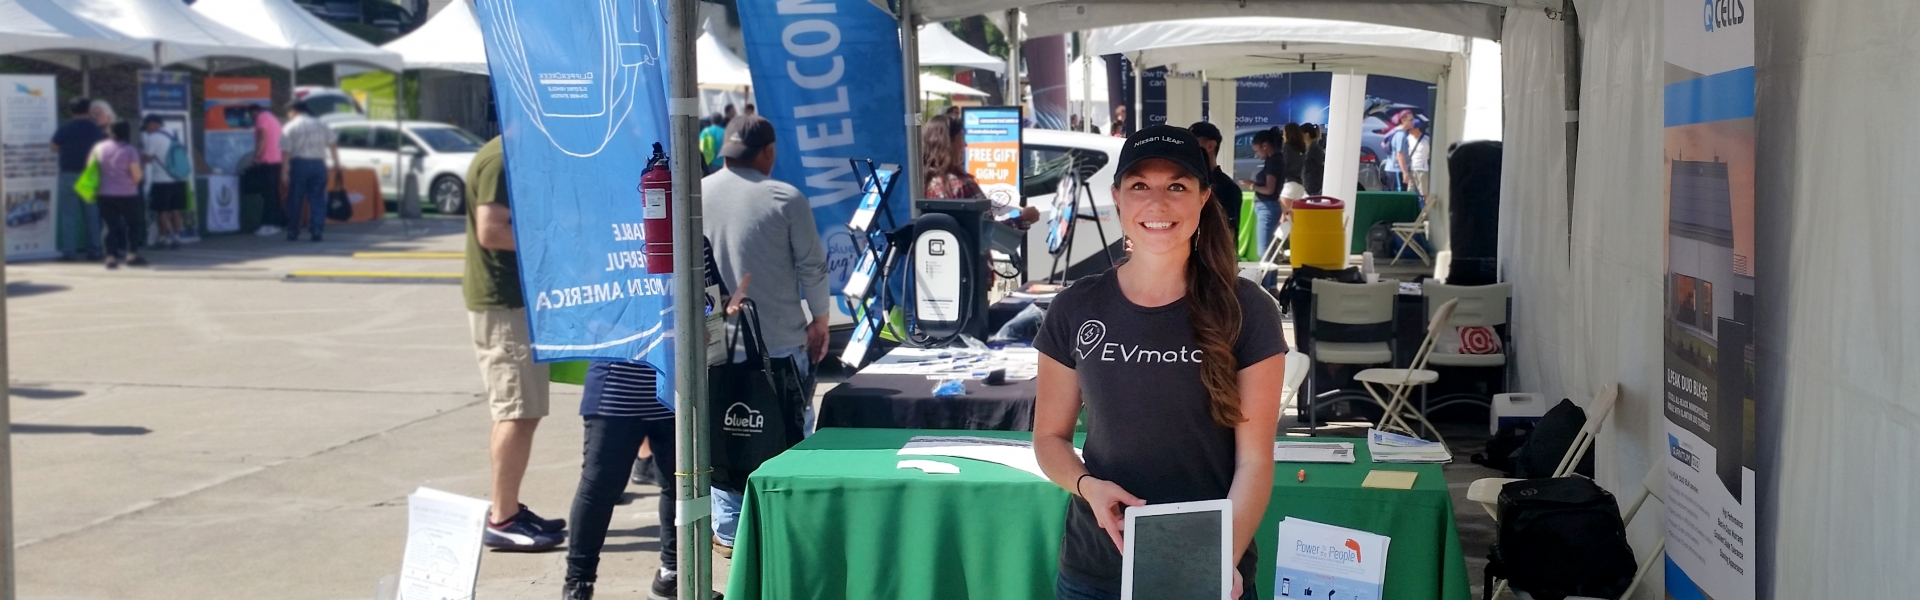 Woman holds tablet at booth at a community event